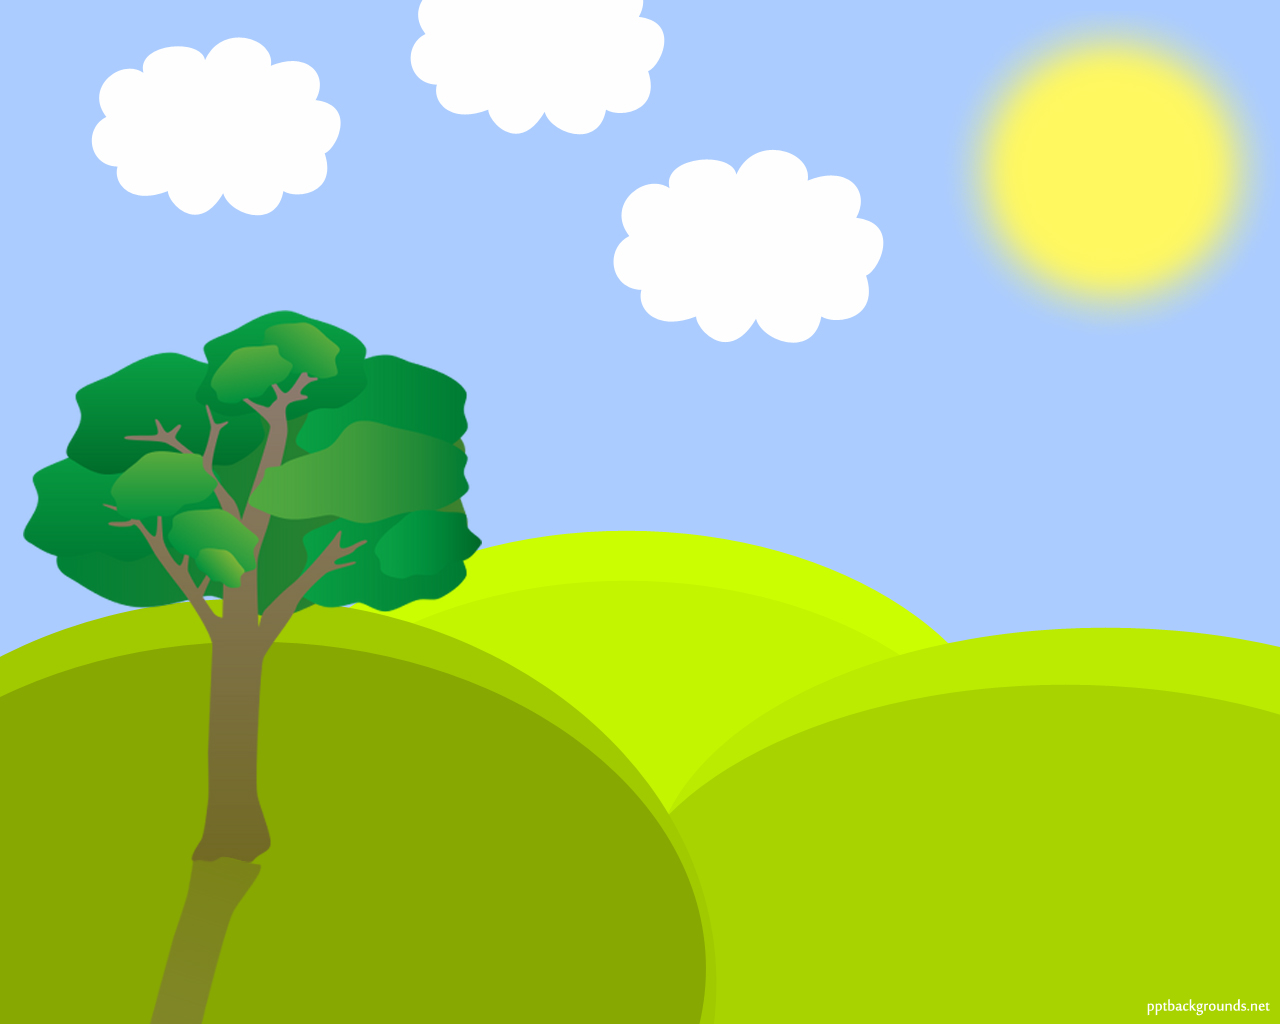 free background clipart templates.